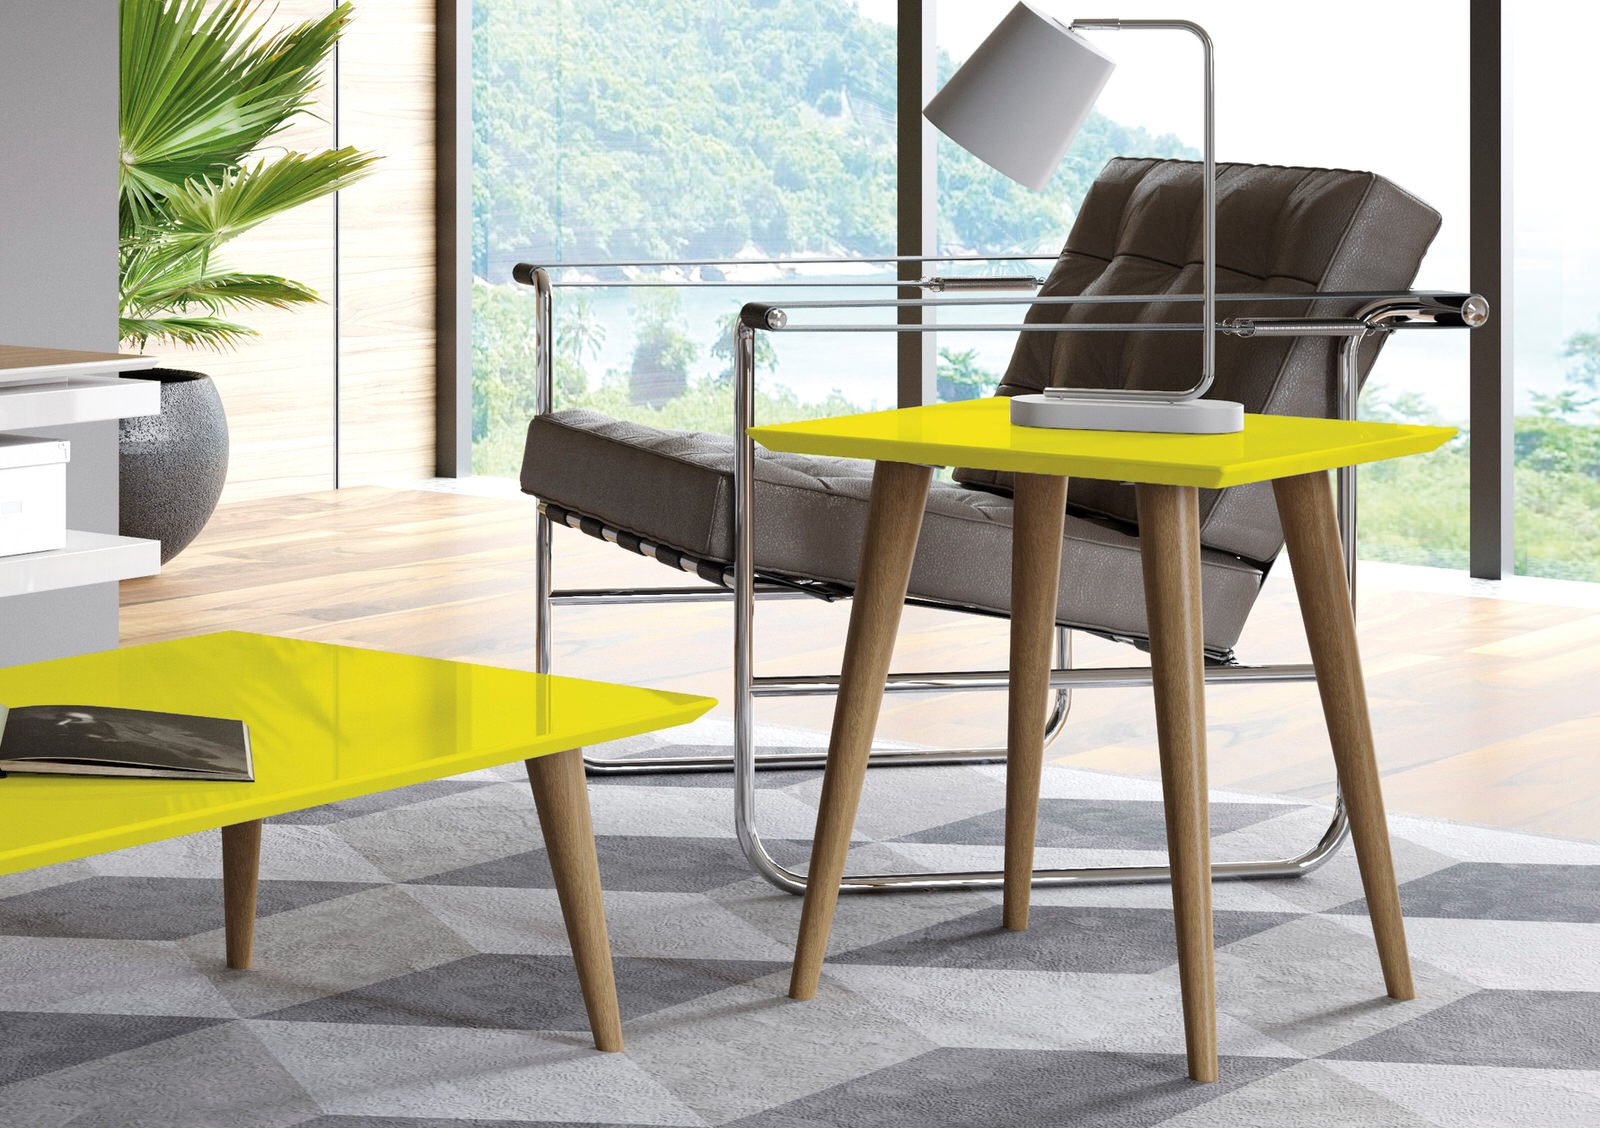 Utopia Yellow 19.68 Inch High Square End Table W/ Splayed Wooden Legs By  Manhattan Comfort